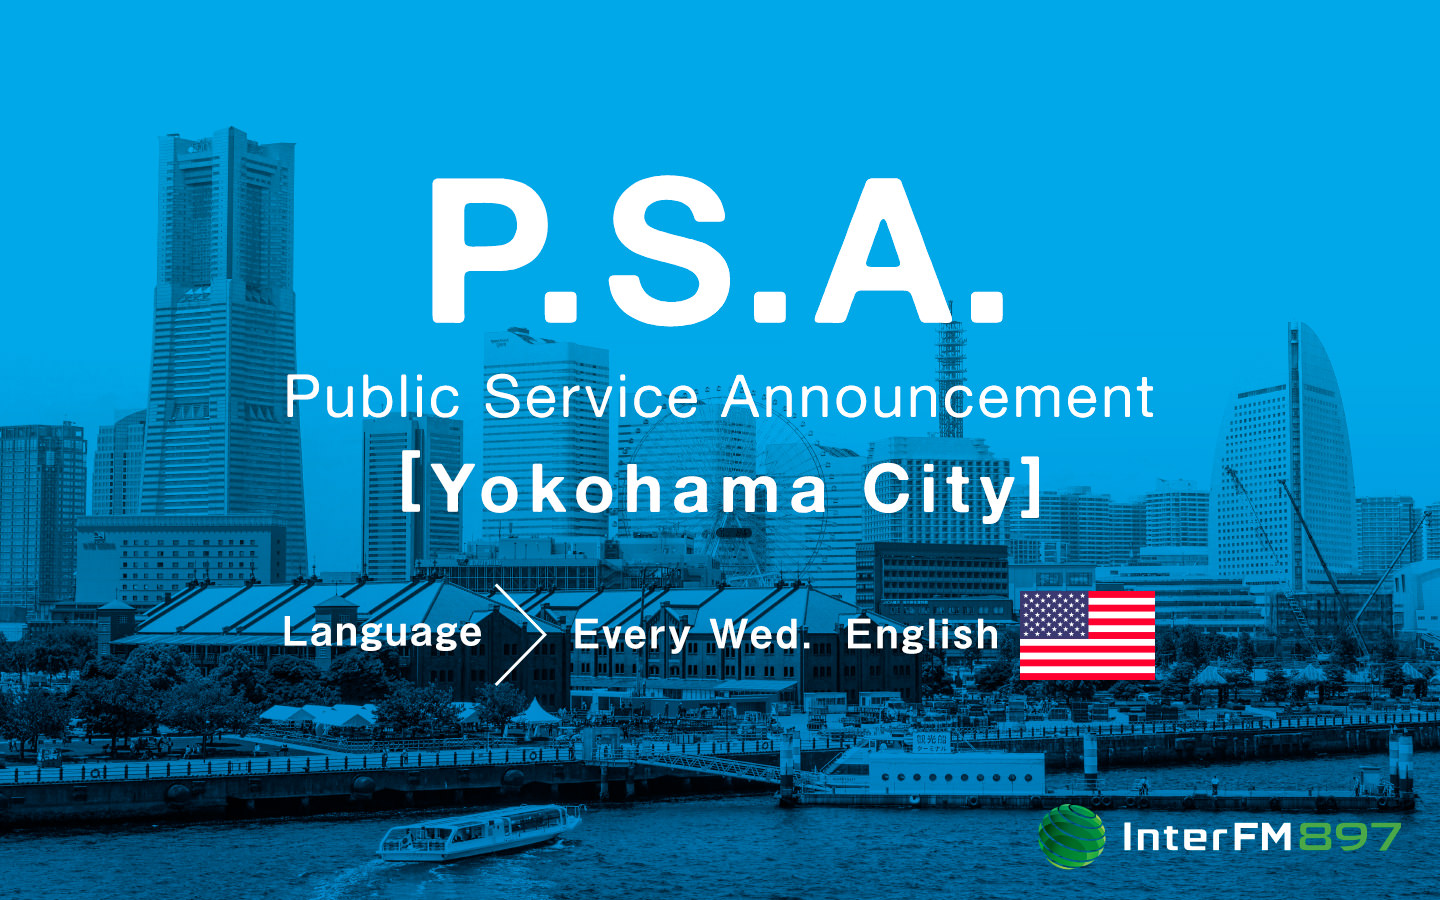 Public Service Announcement - Yokohama City (English)